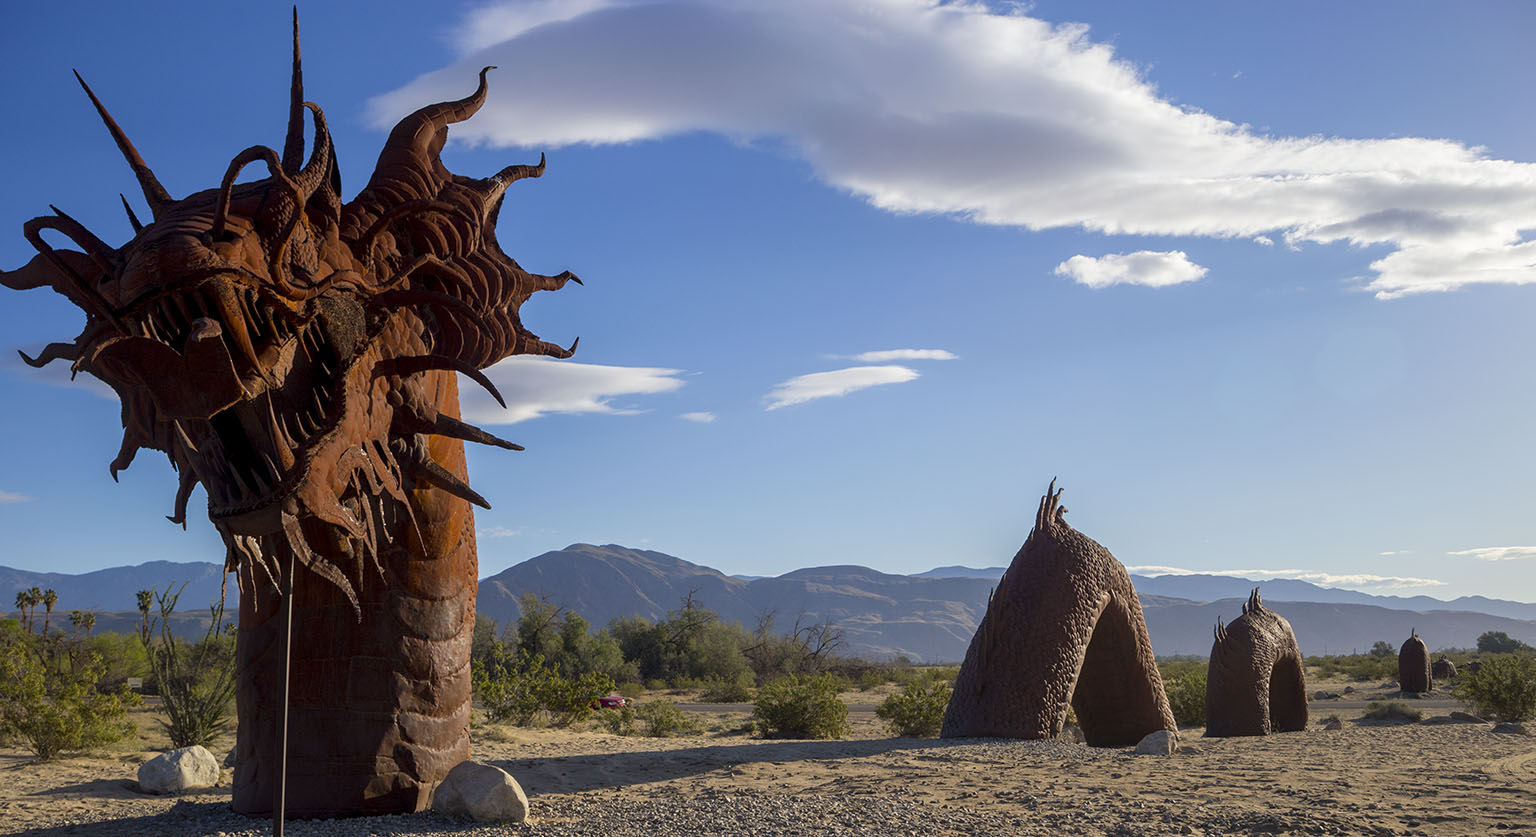 Serpent sculpture around Borrego Springs